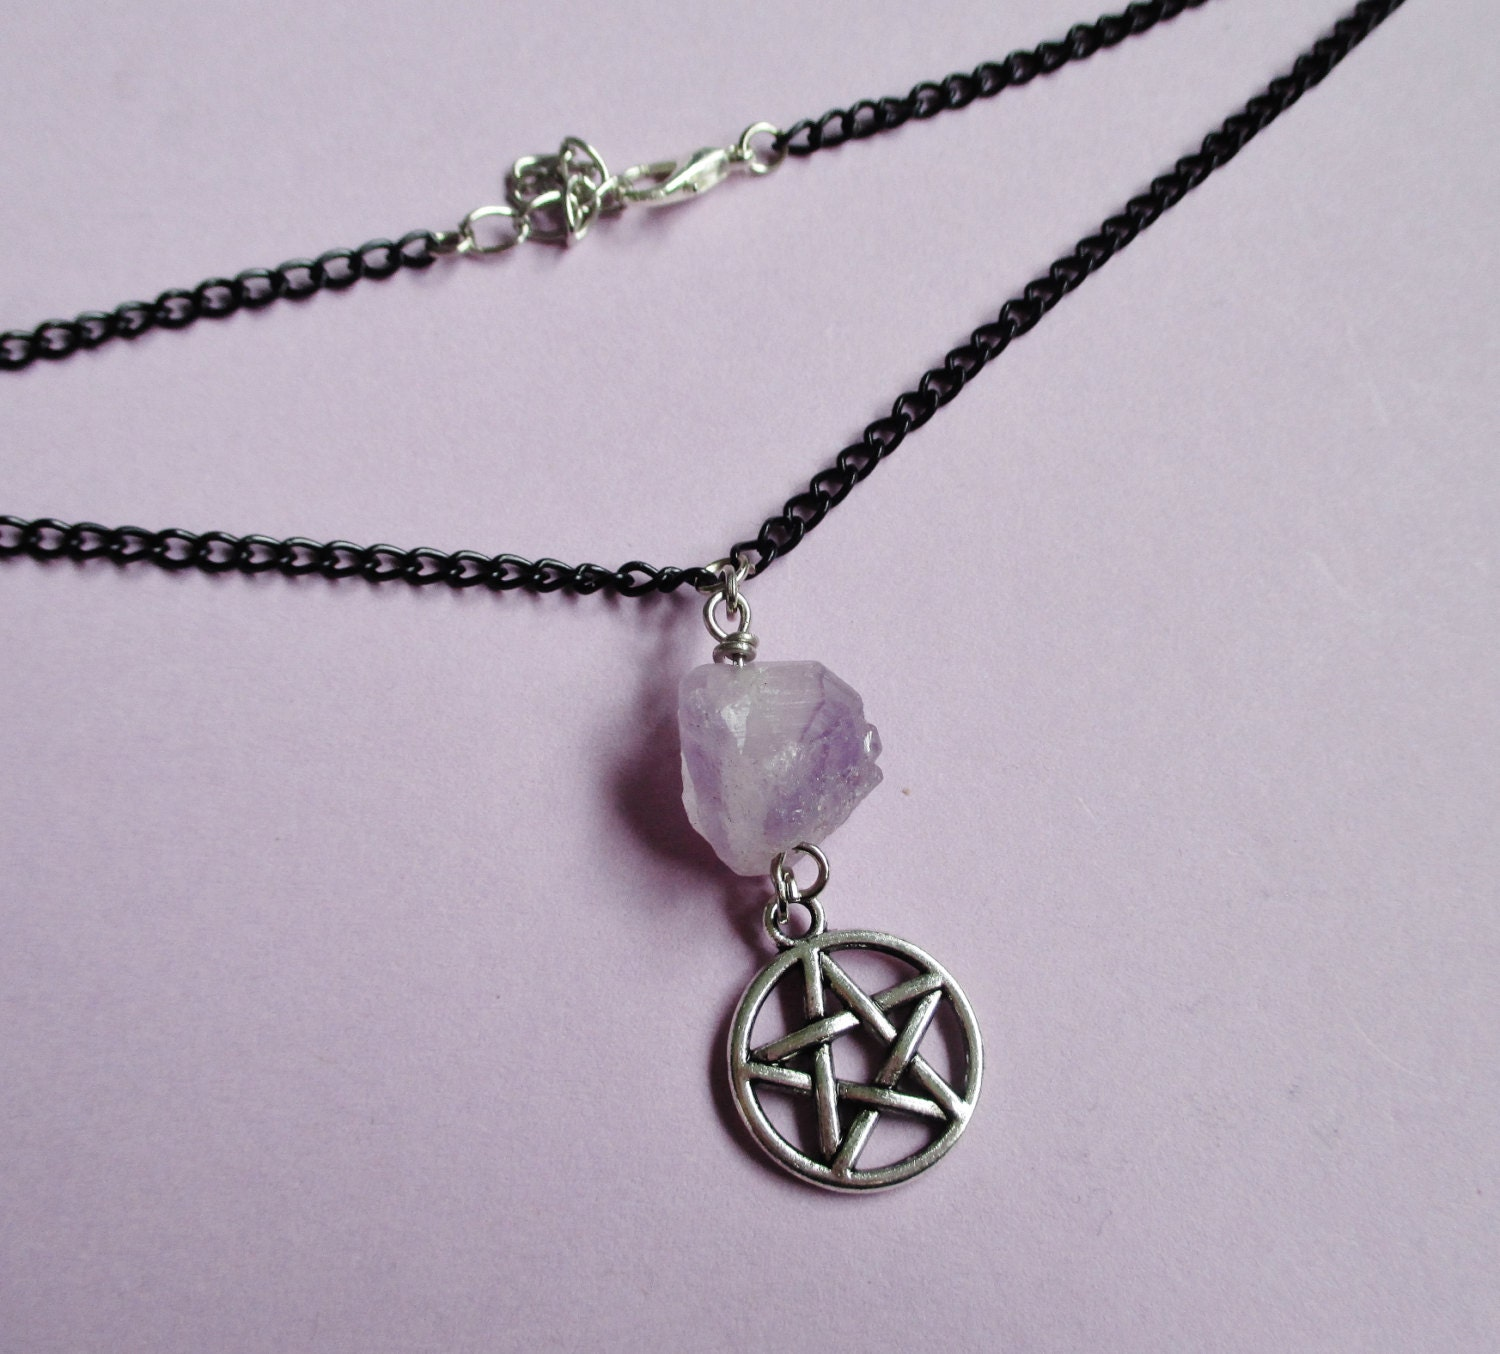 Choker Necklace Etsy: Amethyst Pentagram Choker Gothic Necklace Witch Jewelry